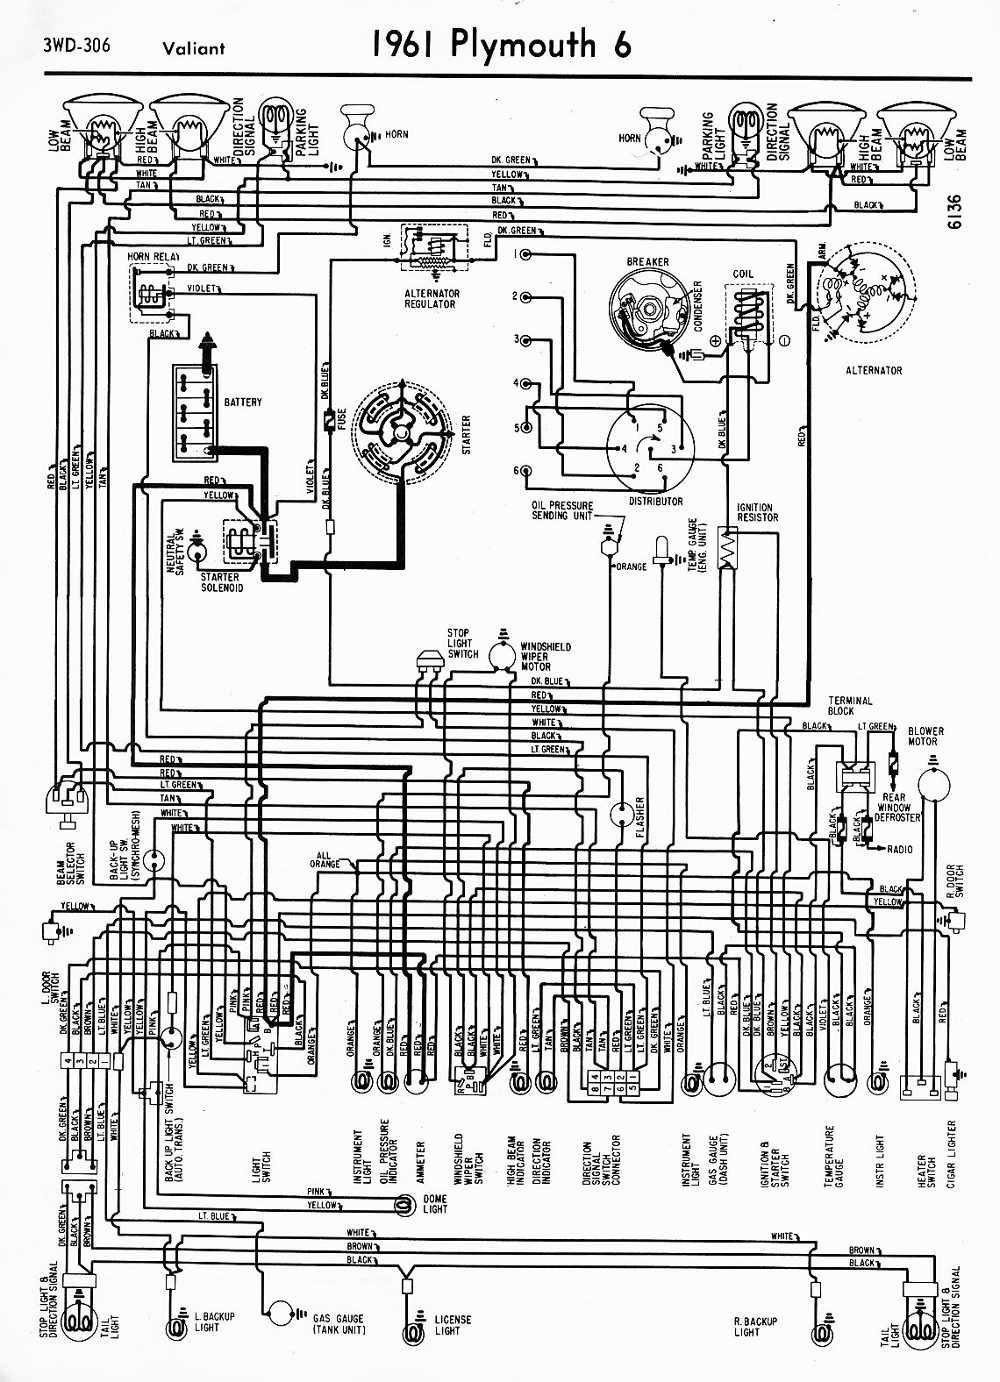 wiring diagrams of 1961 plymouth 6 valiant?t\\\=1508746019 1955 plymouth wiring diagram 1955 wiring diagrams instruction 1970 dodge coronet wiring diagram at gsmportal.co